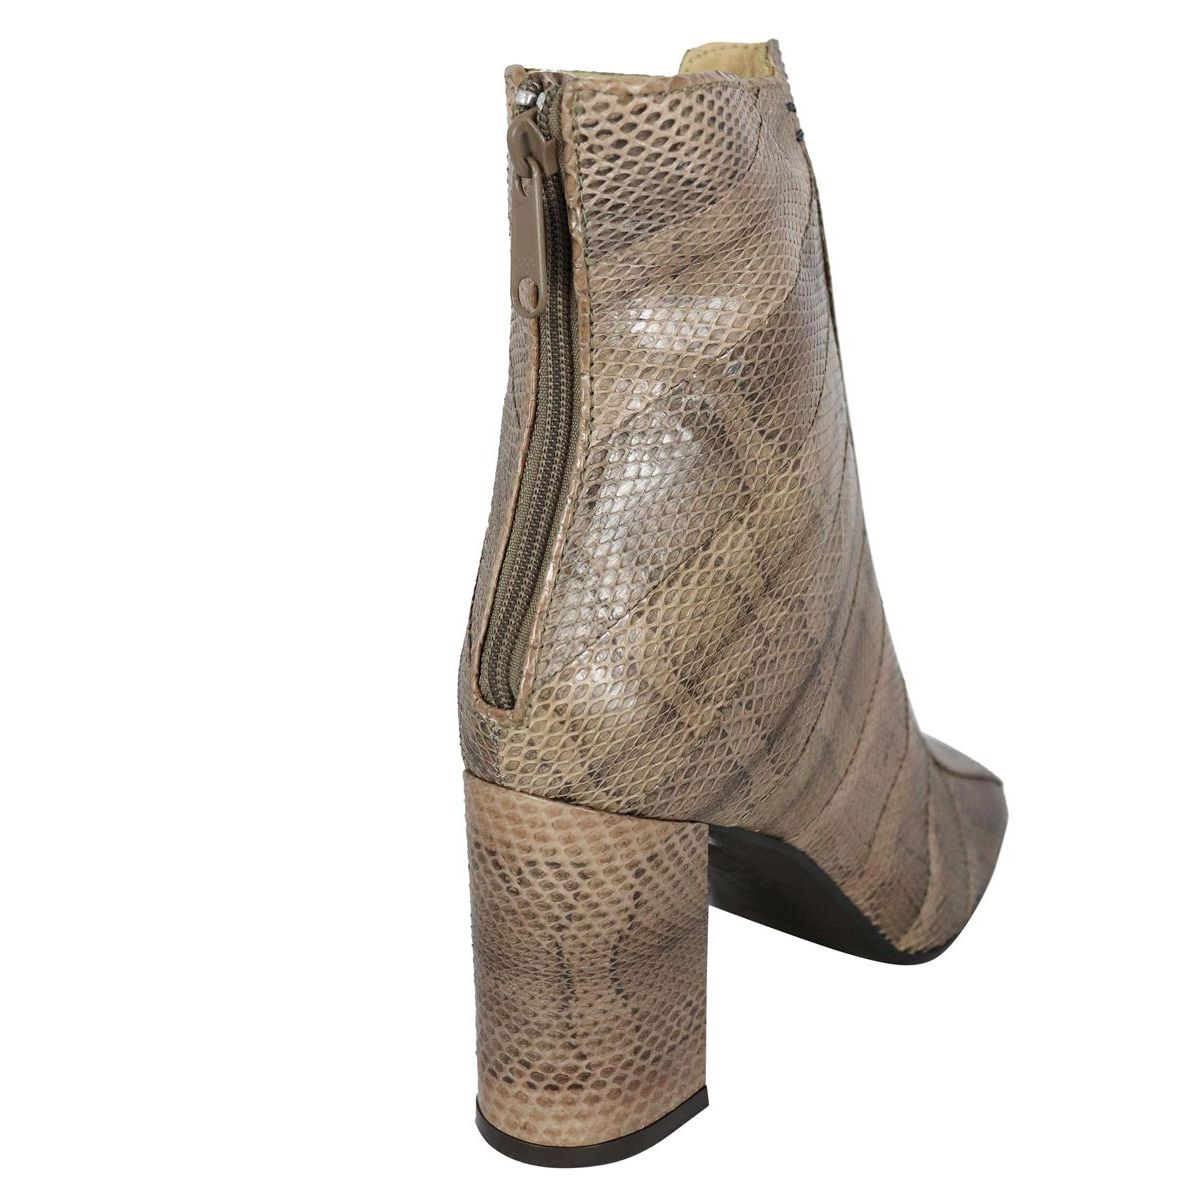 Ankle boot in animal print leather with heel Beige Maliparmi